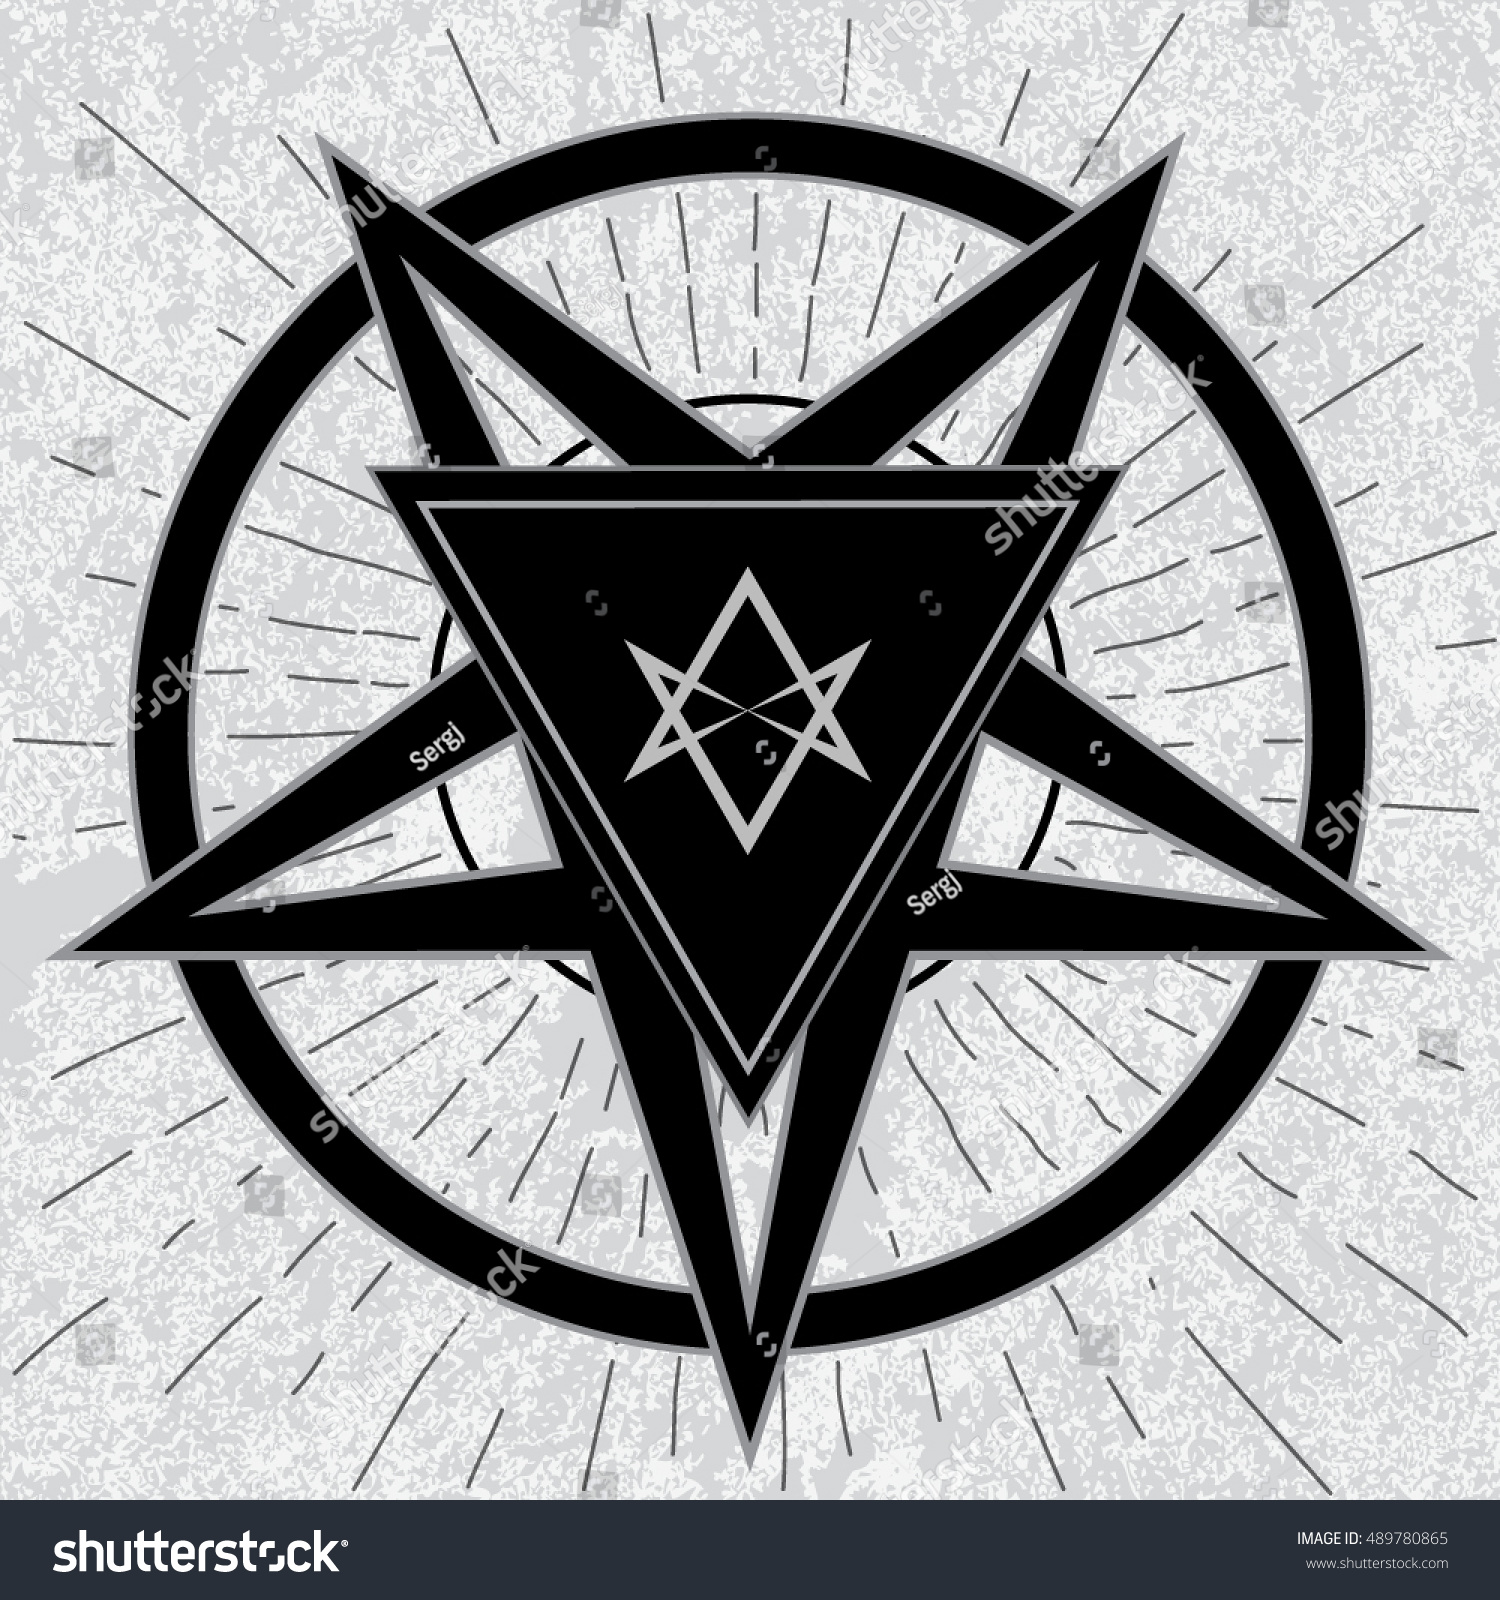 Baphomet sign thelema hexagram stylish pentagram stock vector baphomet sign with thelema hexagram stylish pentagram with thelema sigil inside triangle on grunge background buycottarizona